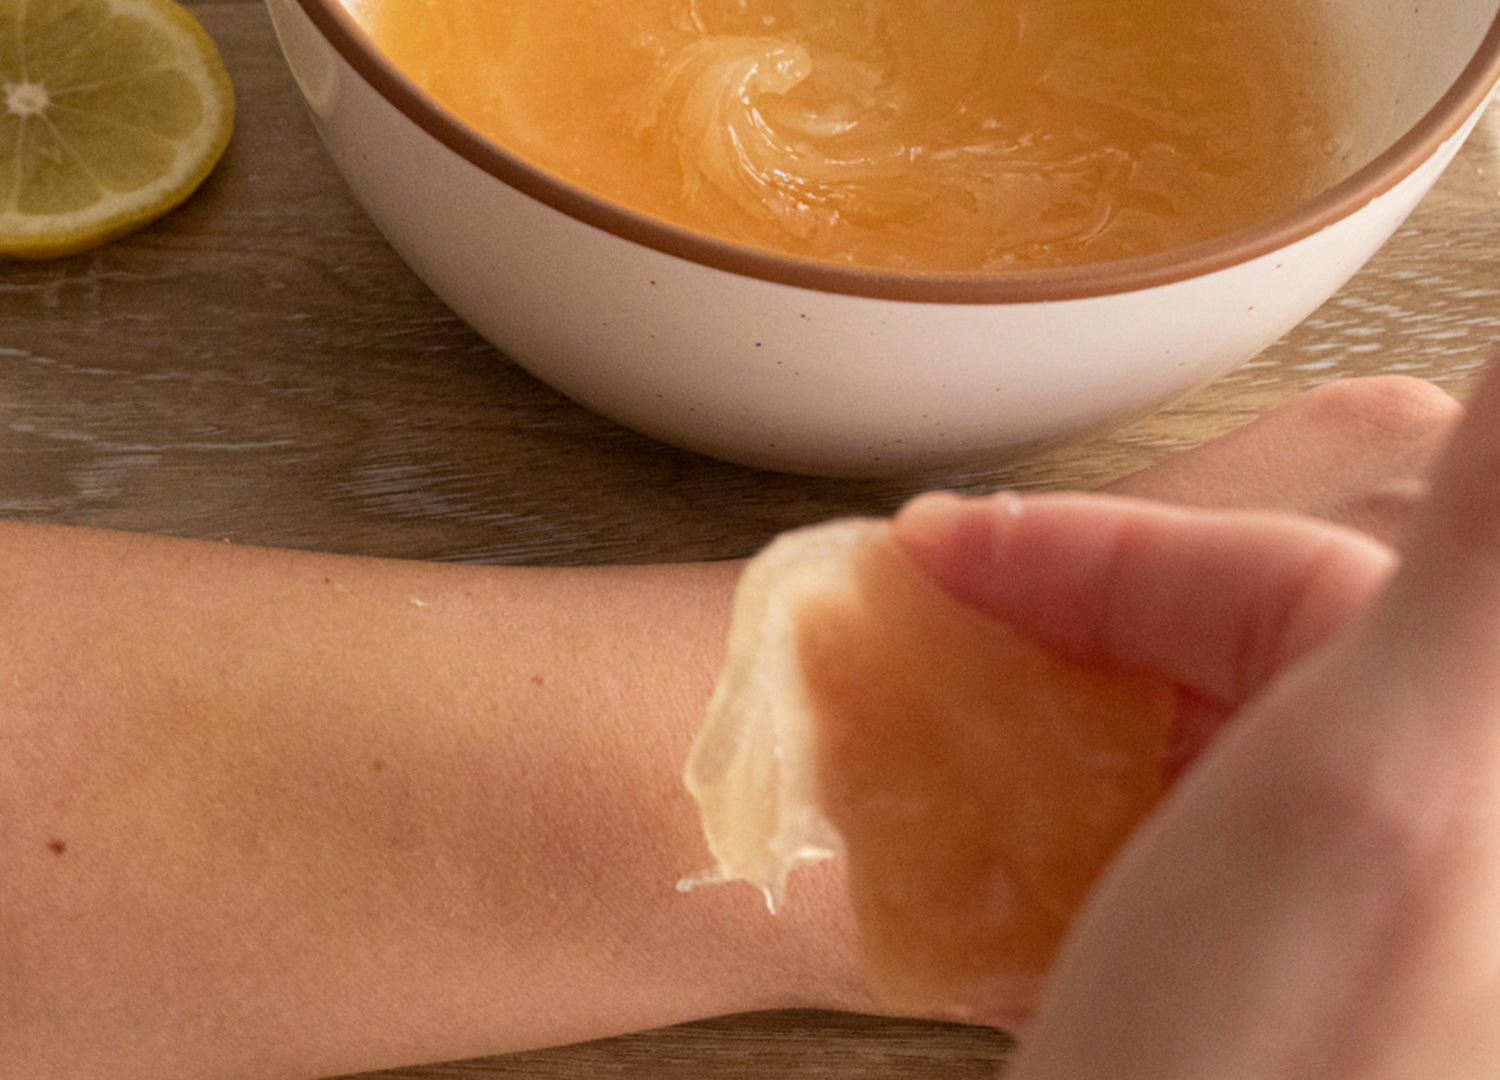 Flick in a horizontal motion with the direction of the hair growth, keeping the sugar wax toward your finger tips.